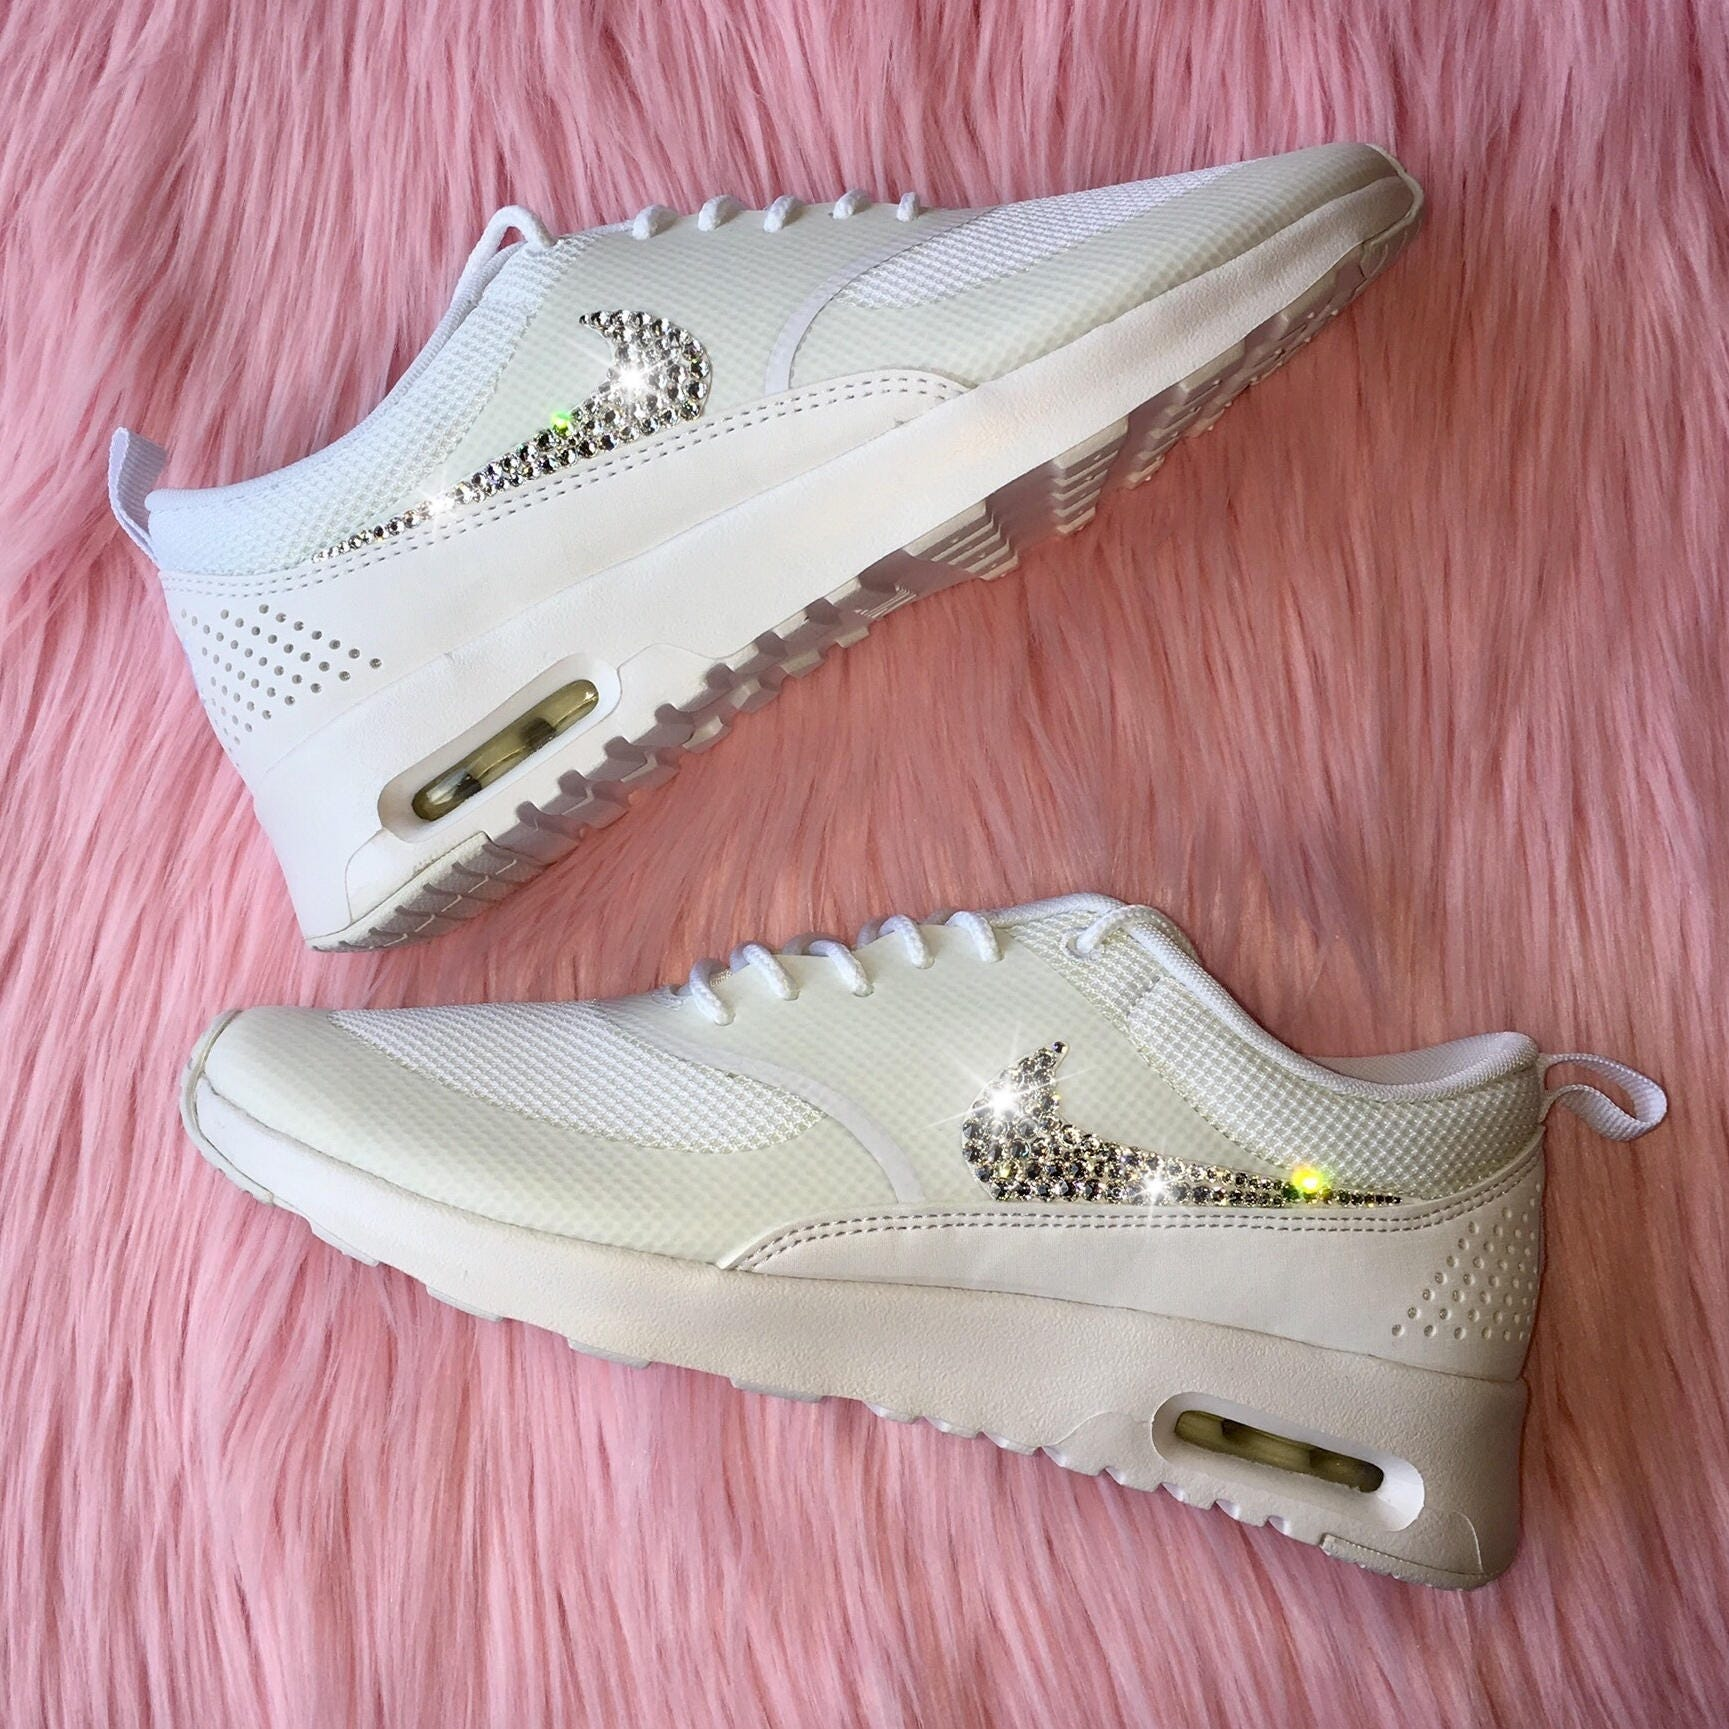 Bling Nike Shoes with Swarovski Crystals * Nike Air Max Thea In ALL WHITE Bedazzled with 100% Authentic Swarovski Crystal Rhinestones